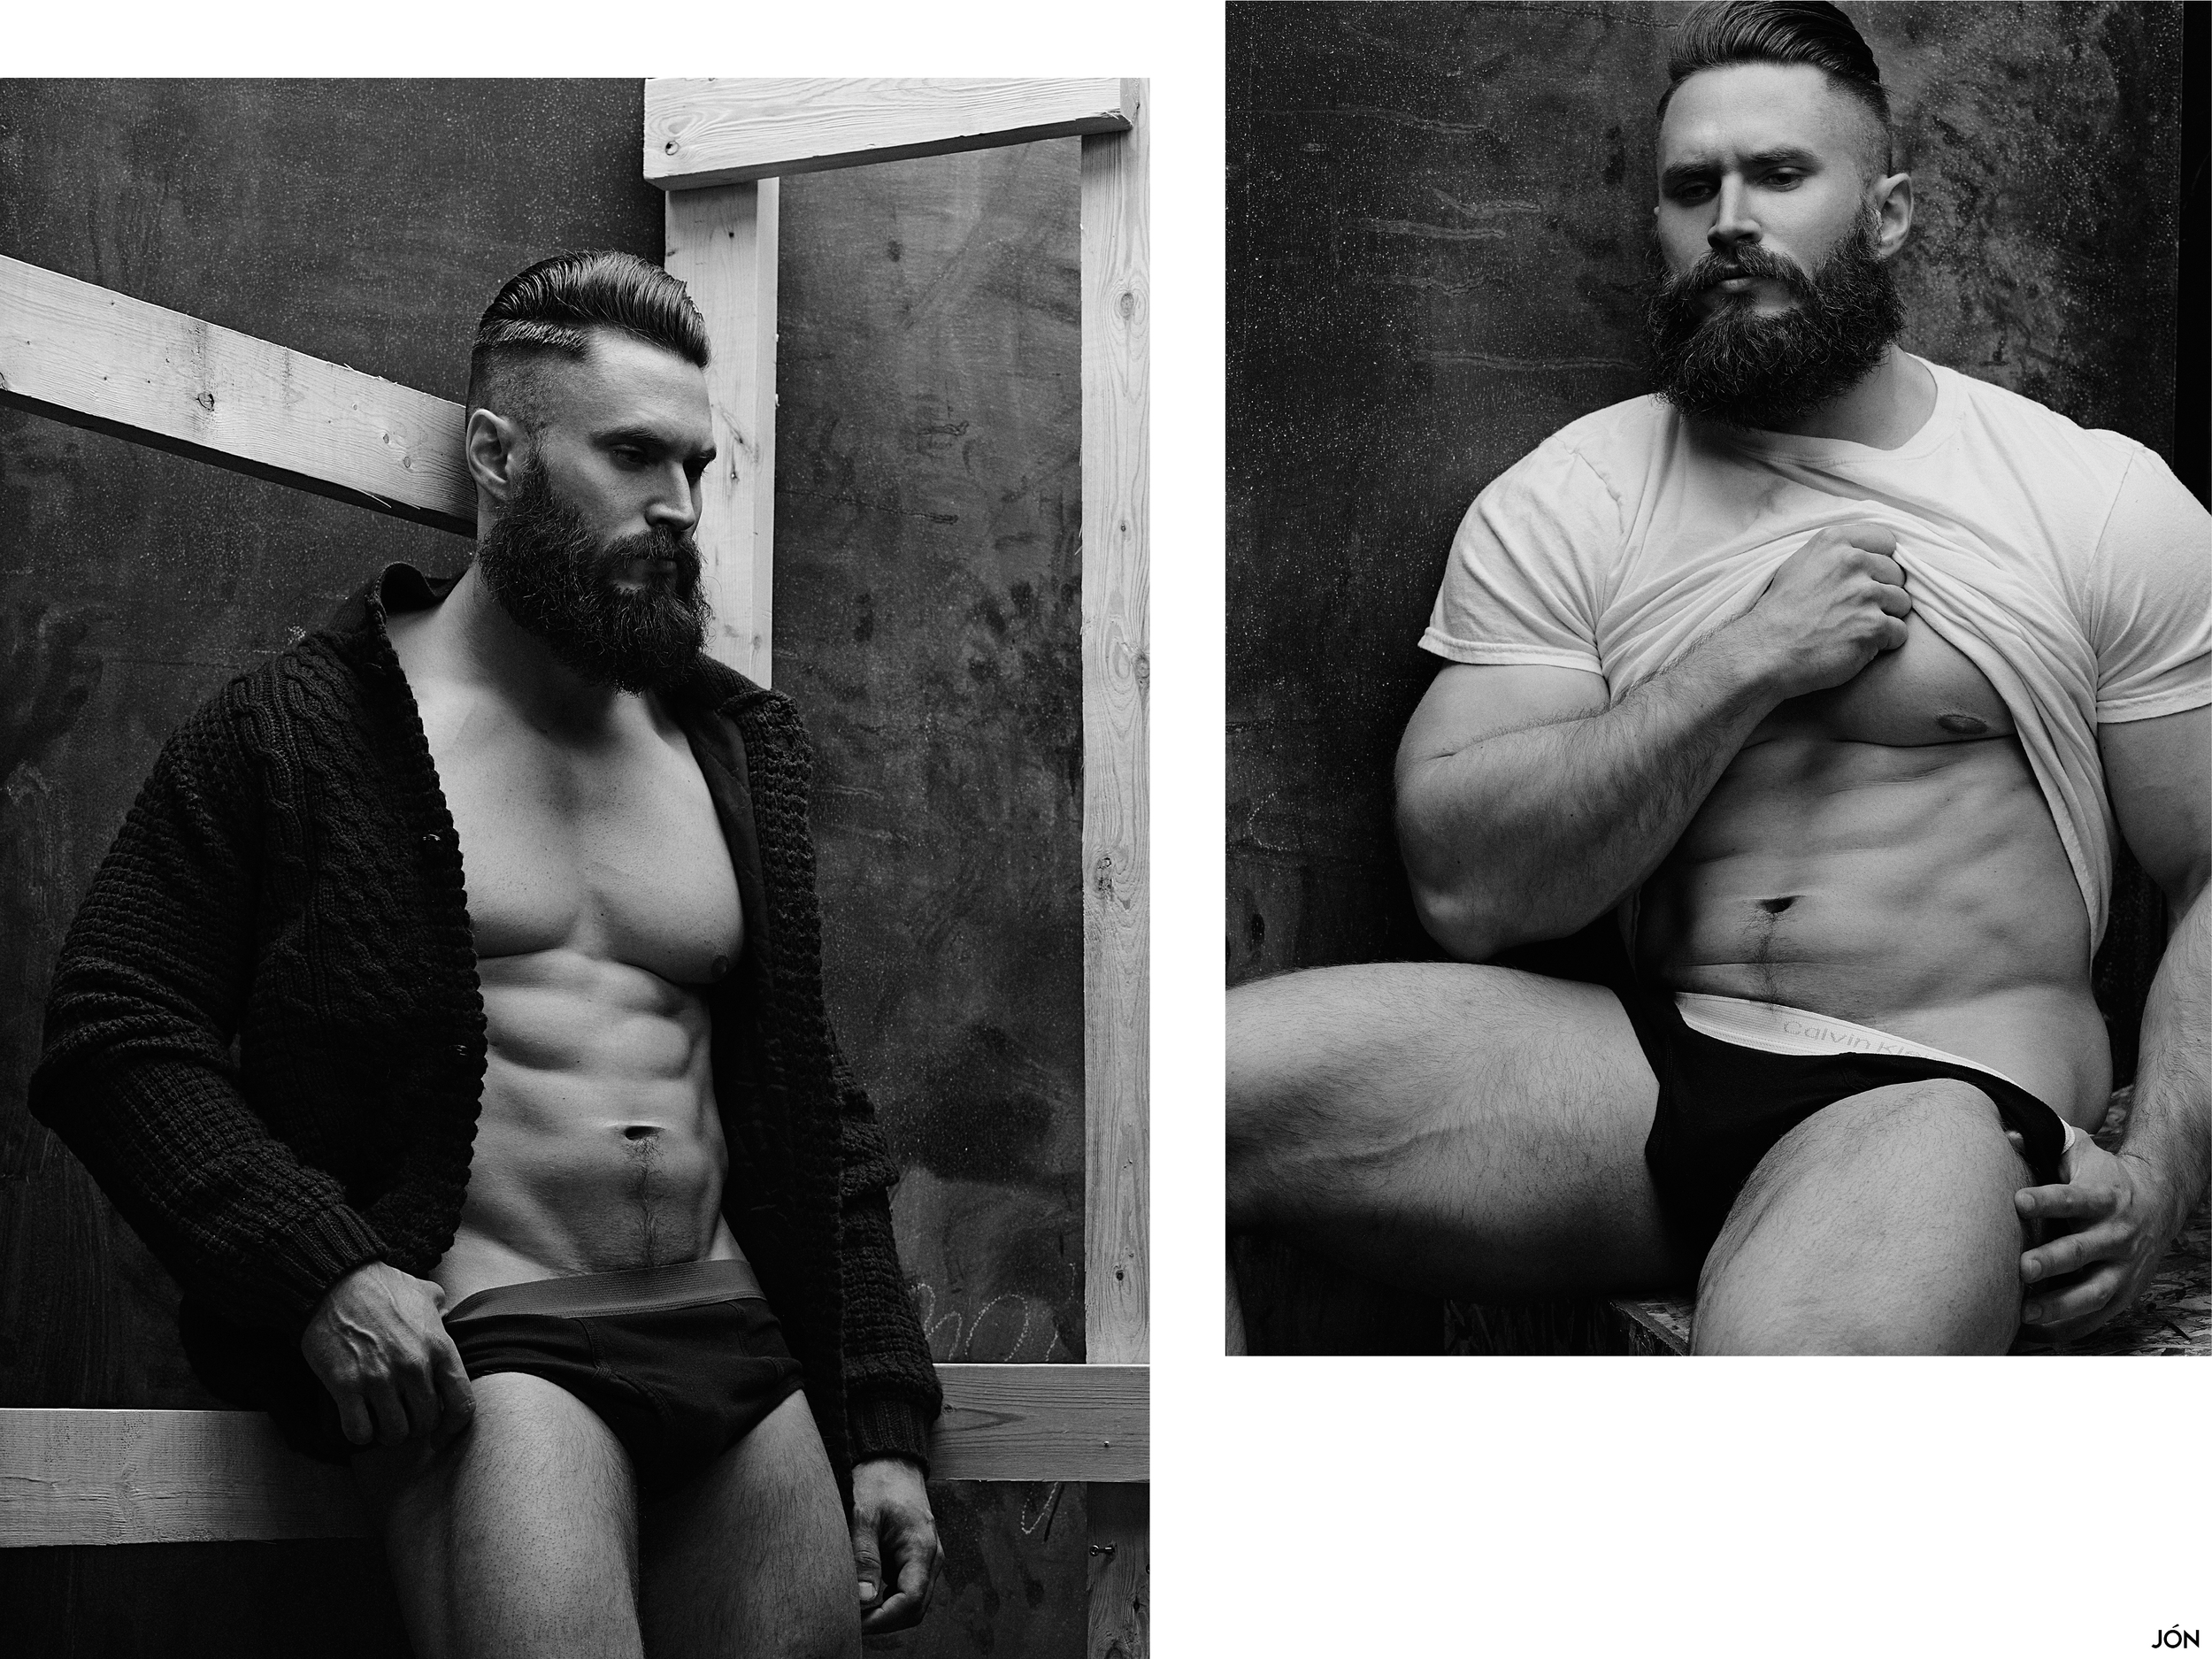 """Left:Sweater Models Own. Underwear American Apparel. Right:        544x376               Normal   0           false   false   false     EN-GB   JA   X-NONE                                                                                                                                                                                                                                                                                                                                                                            /* Style Definitions */ table.MsoNormalTable {mso-style-name:""""Table Normal""""; mso-tstyle-rowband-size:0; mso-tstyle-colband-size:0; mso-style-noshow:yes; mso-style-priority:99; mso-style-parent:""""""""; mso-padding-alt:0cm 5.4pt 0cm 5.4pt; mso-para-margin:0cm; mso-para-margin-bottom:.0001pt; mso-pagination:widow-orphan; font-size:10.0pt; font-family:""""Times New Roman"""";}      T-Shirt Calvin Klein. Underwear Calvin Klein."""